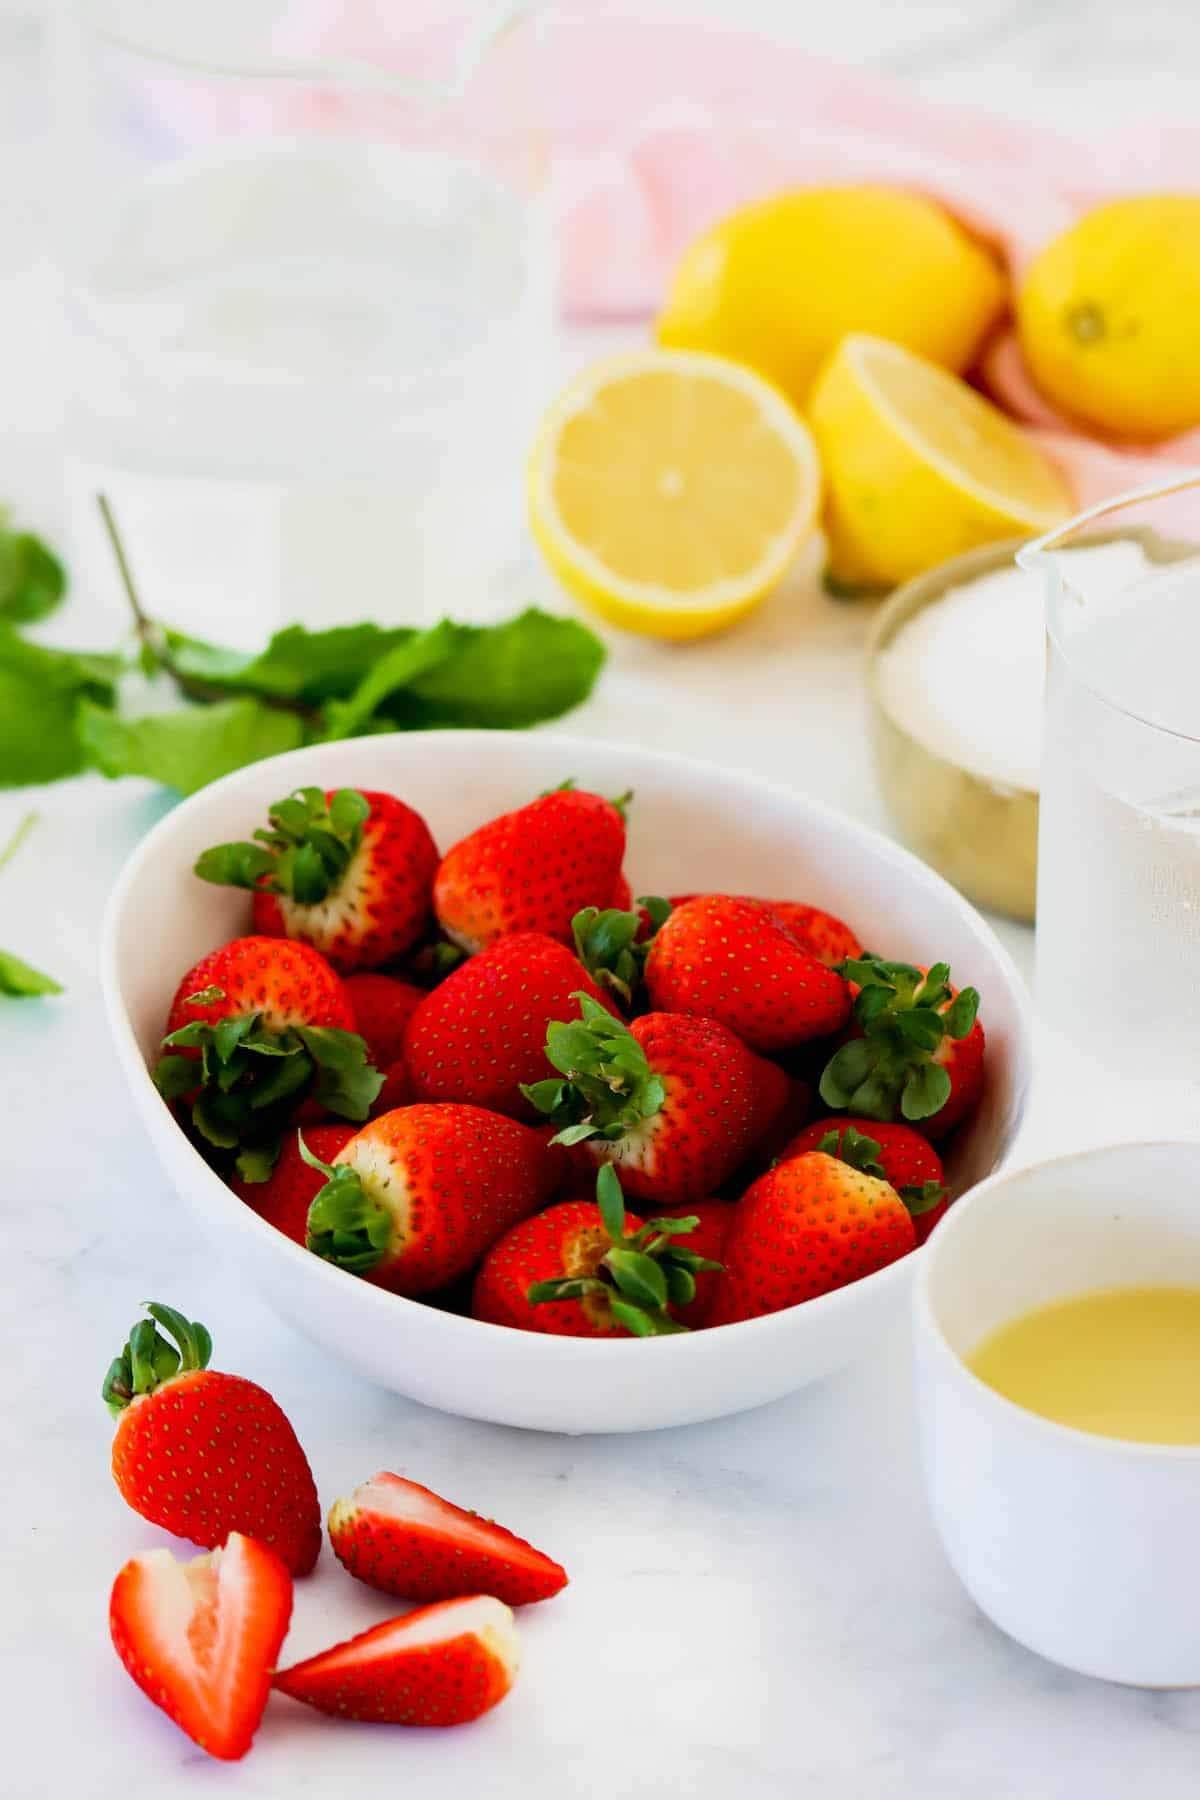 Fresh strawberries in a bowl with lemons in the background